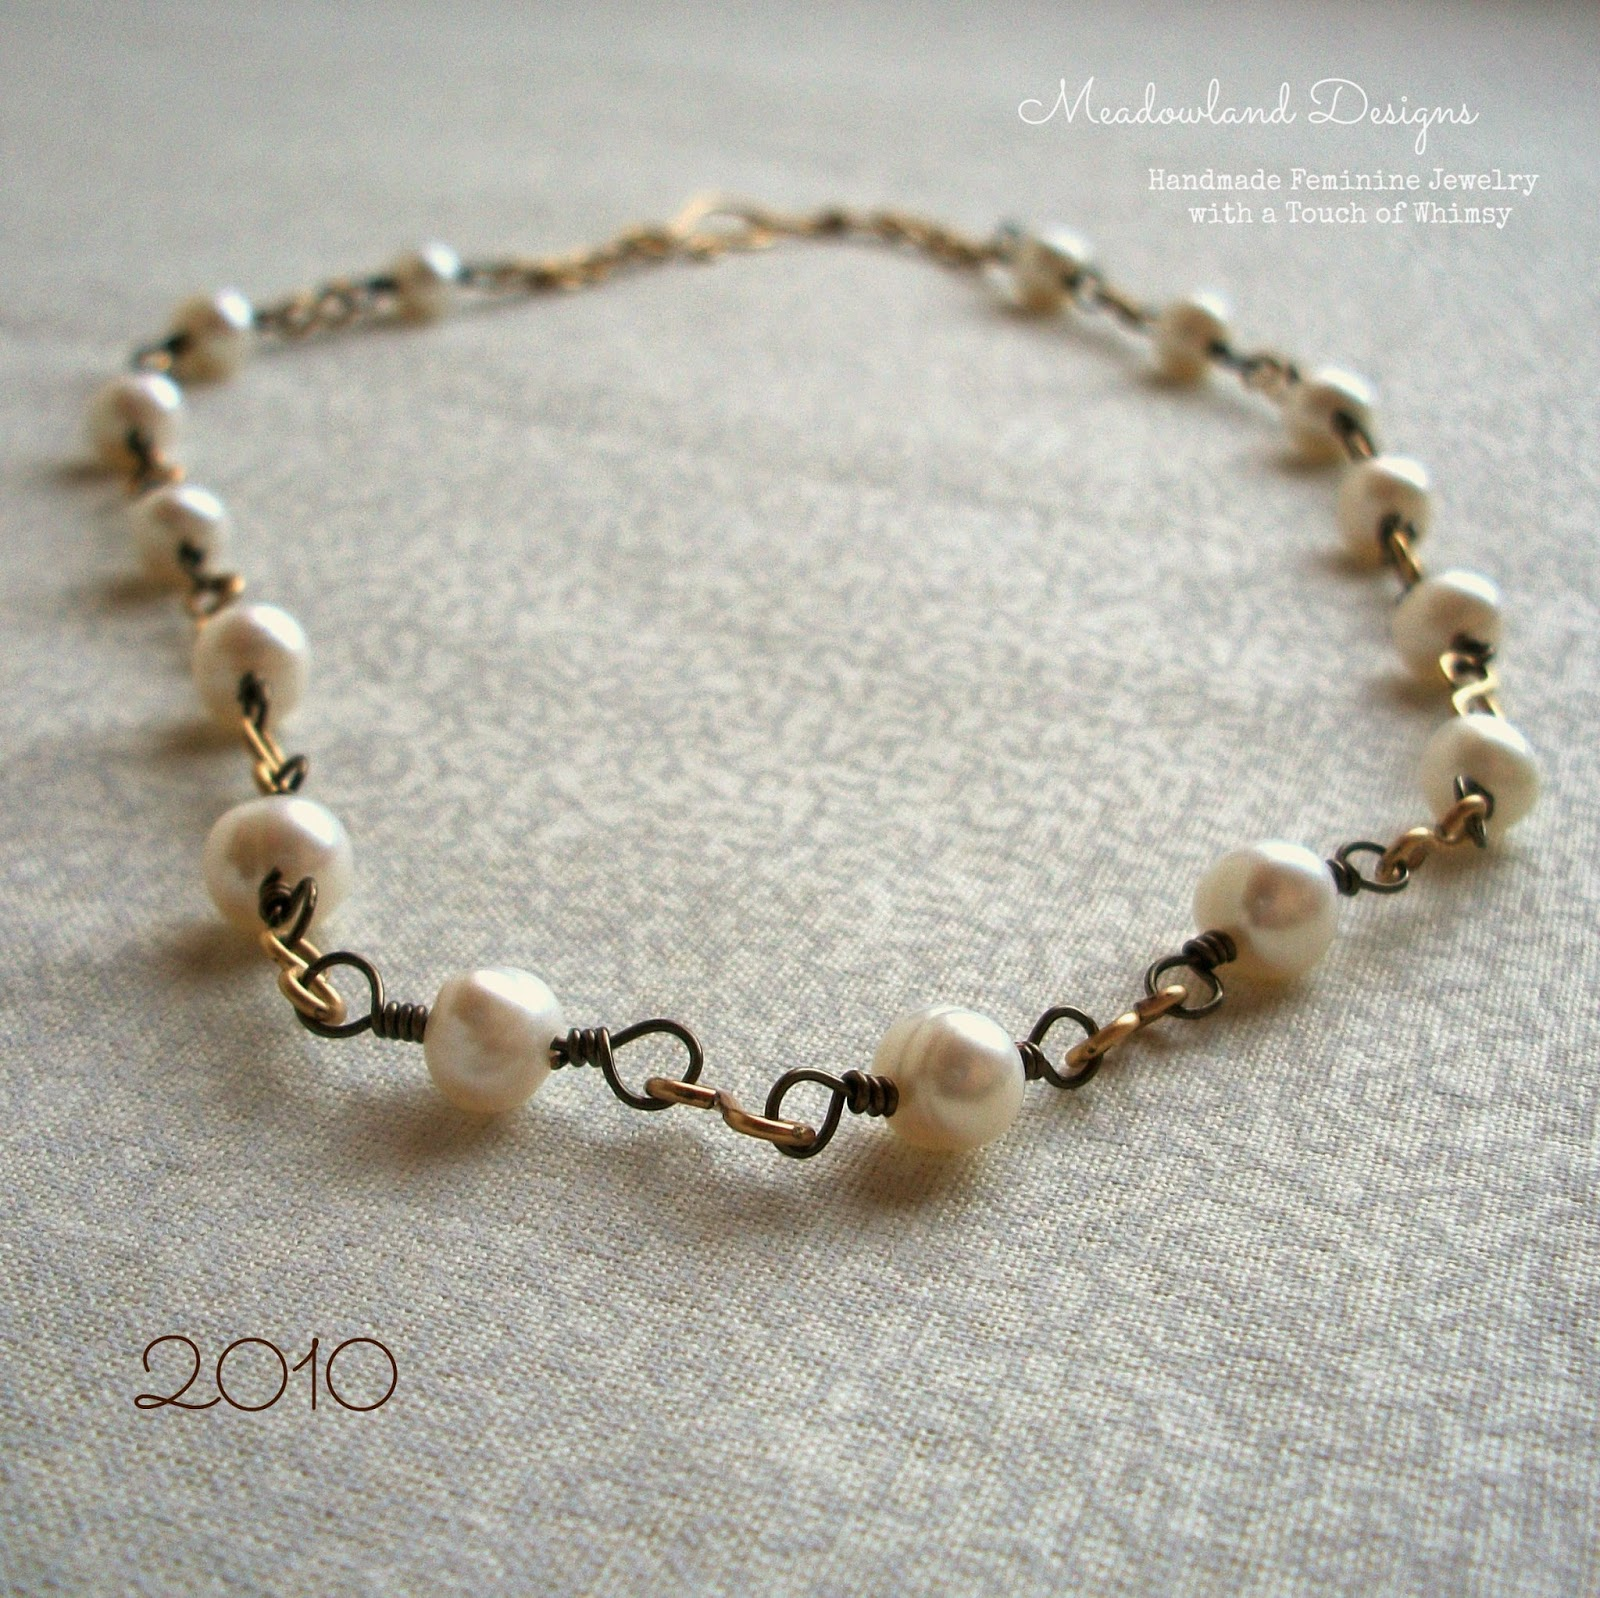 Mixed Metal Pearl Wirework Necklace, 2010